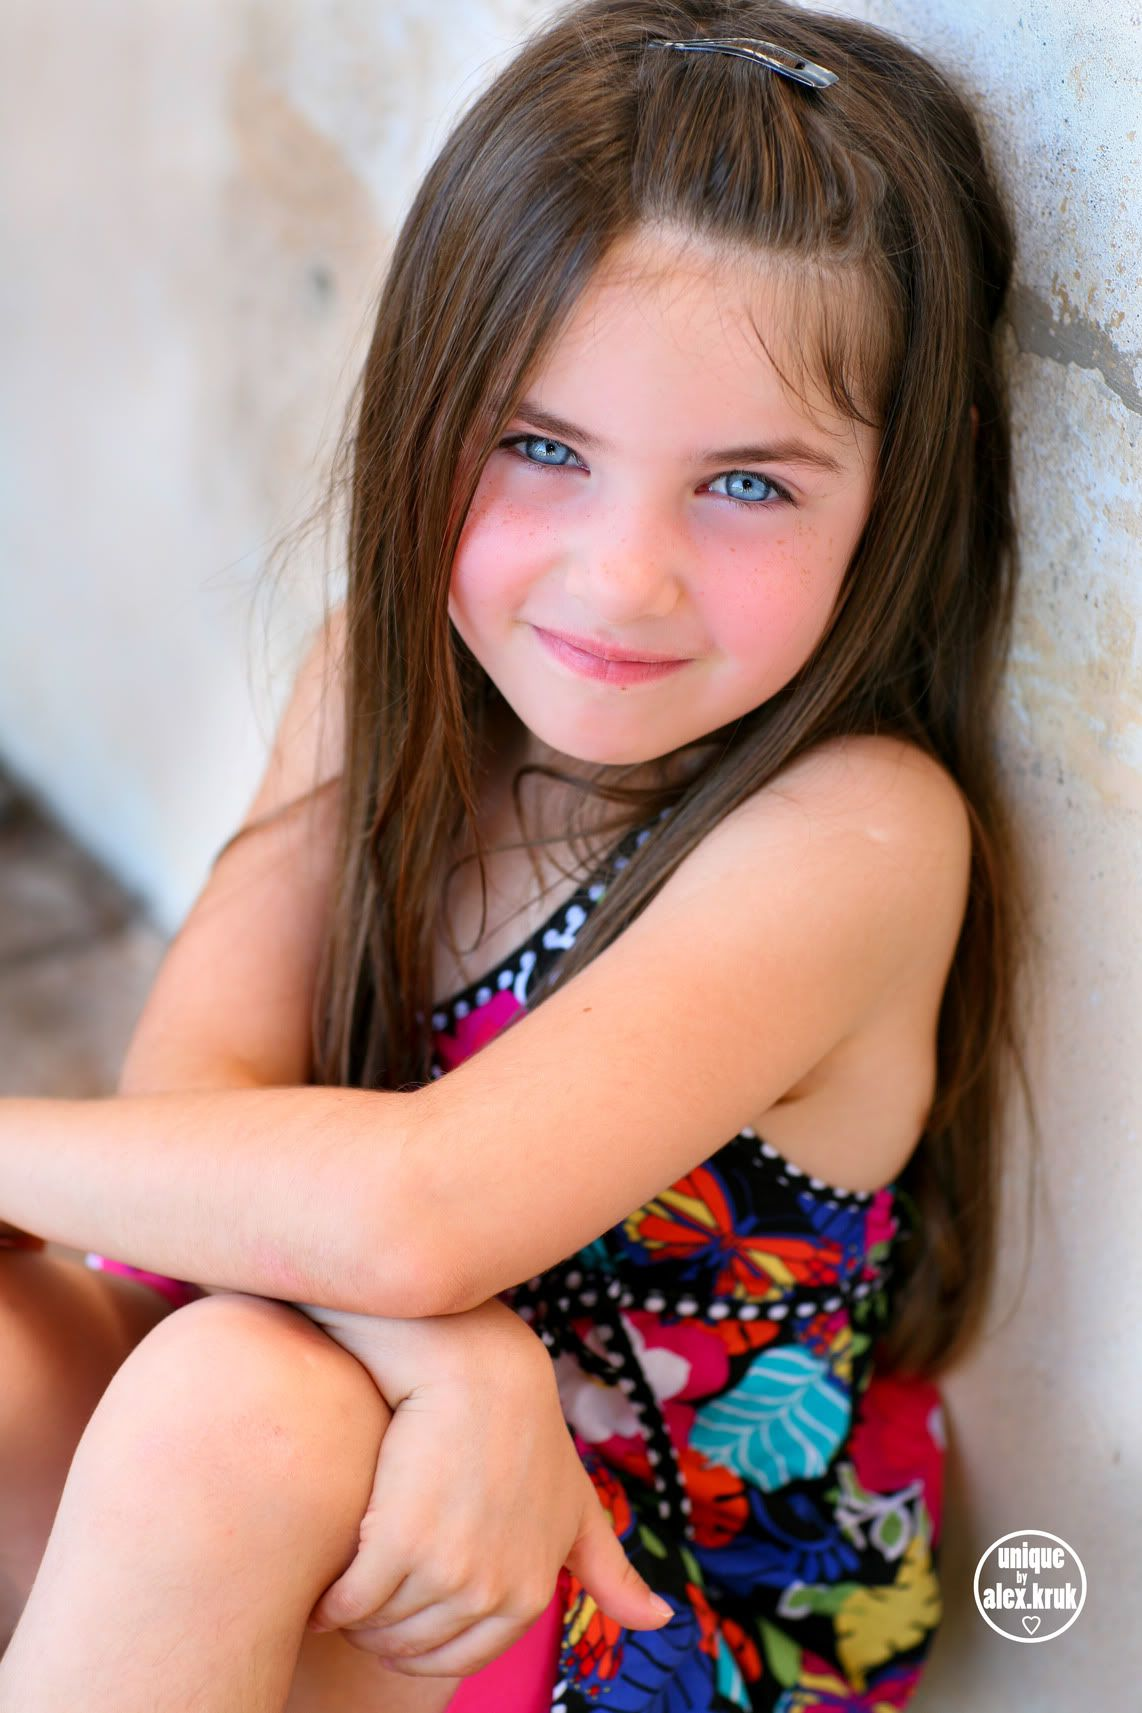 xusenet.com nonude 1000+ images about Kids Headshots on Pinterest | 8 Year Olds, Child Models and Head Shots